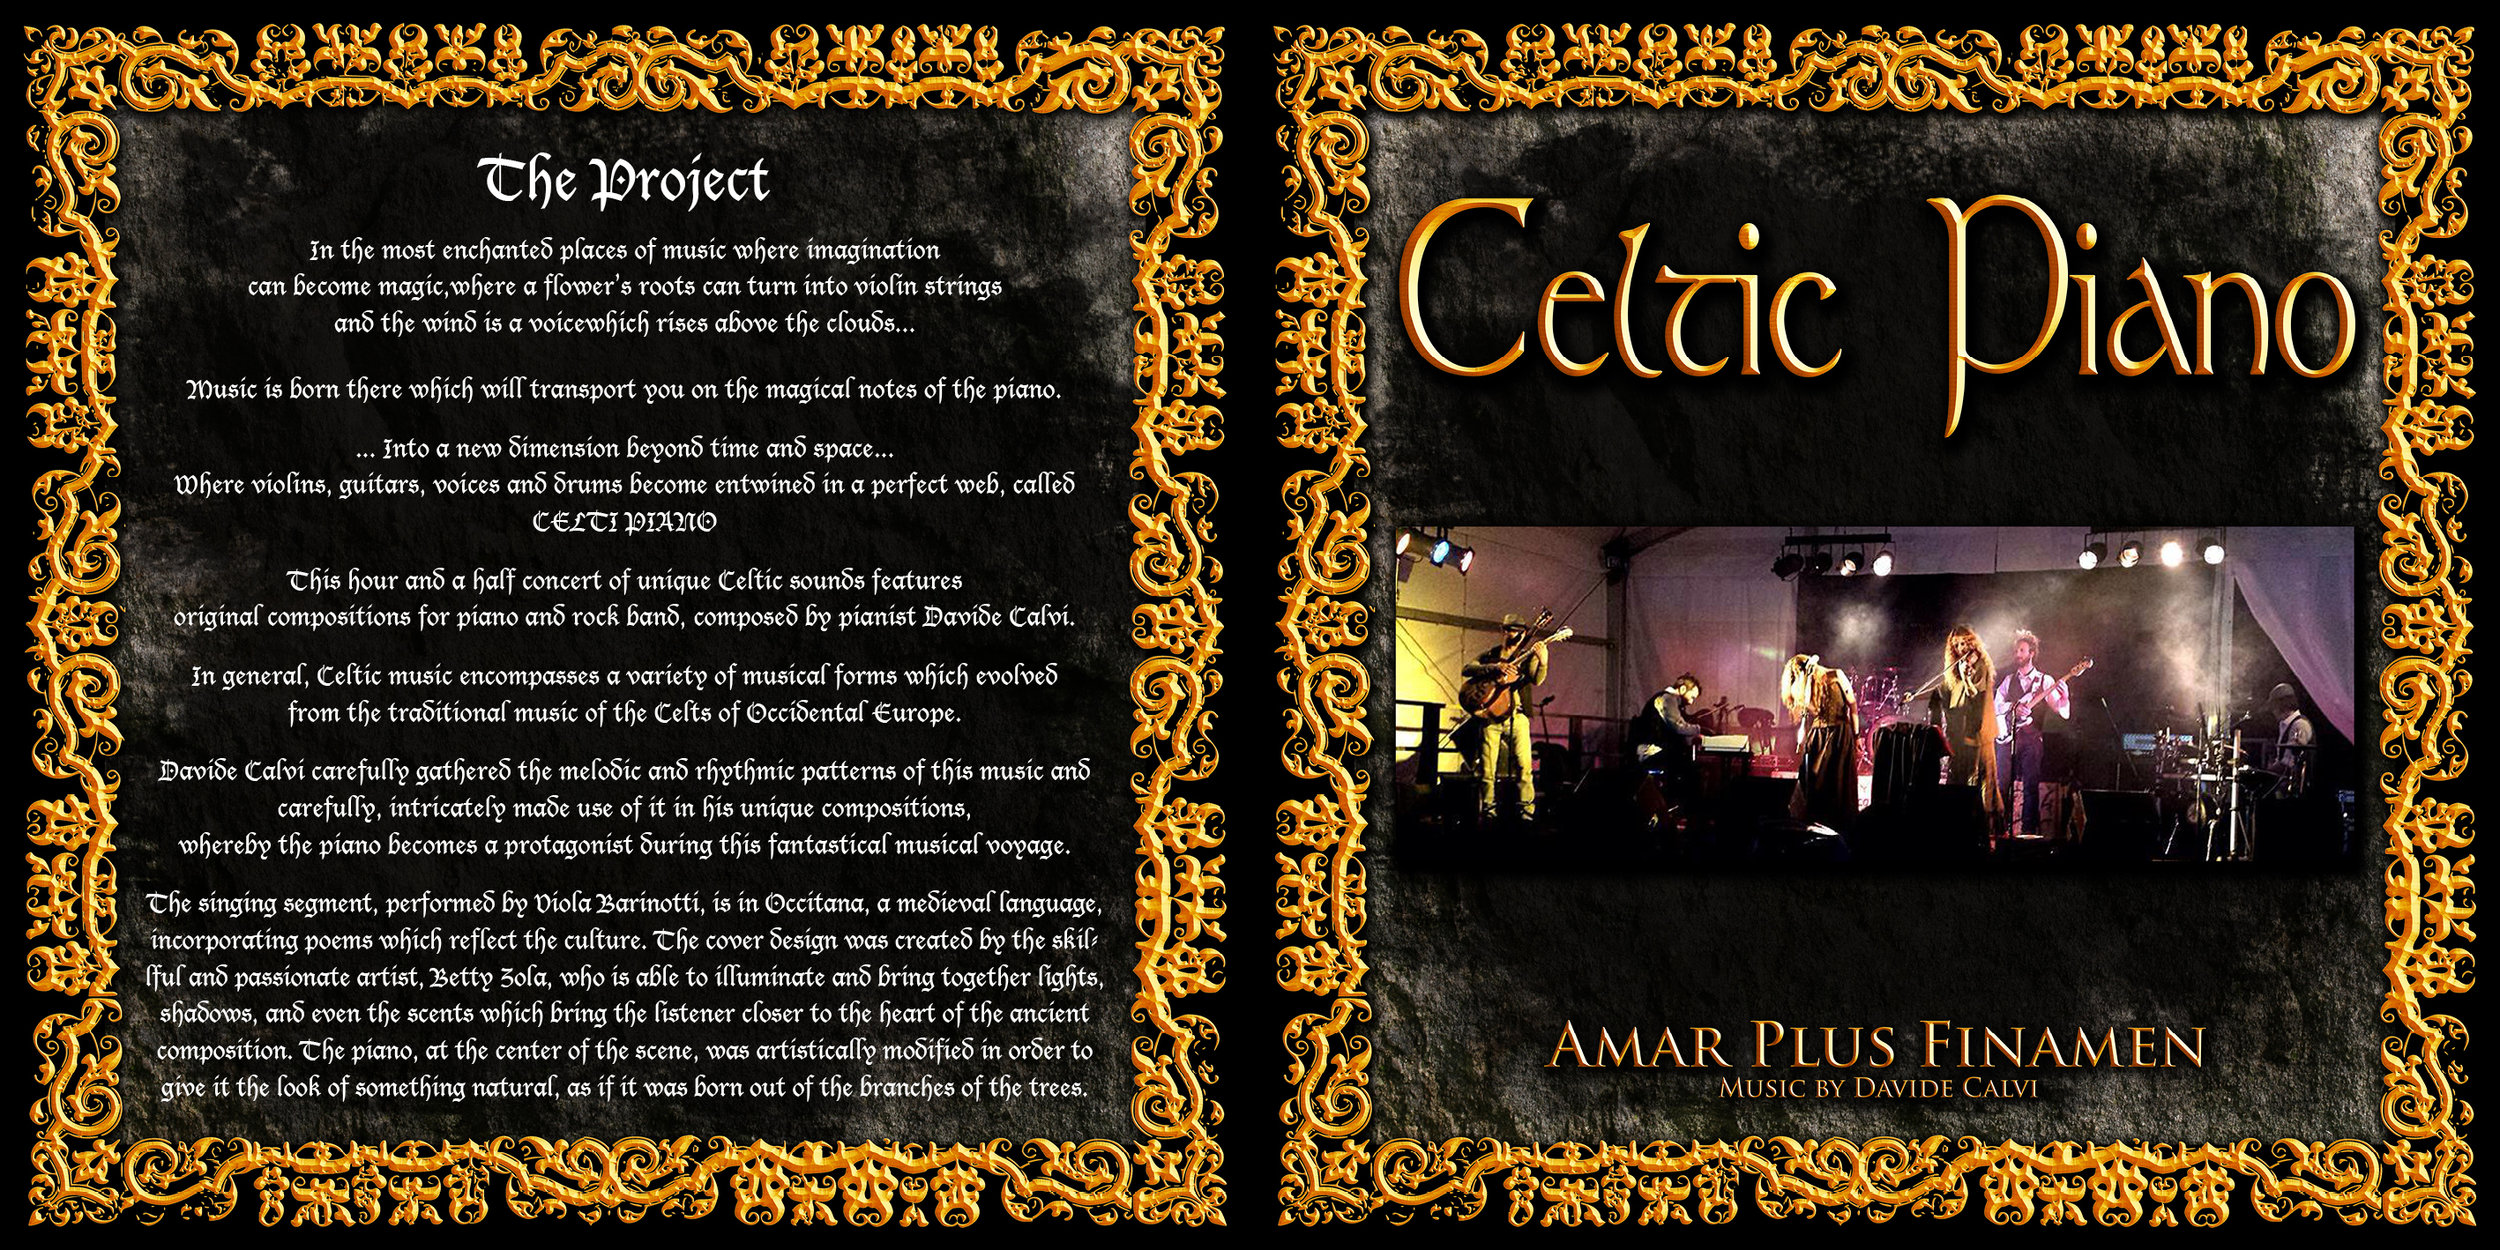 Celtic Piano    –     Amar Plus Finamen    (2015)